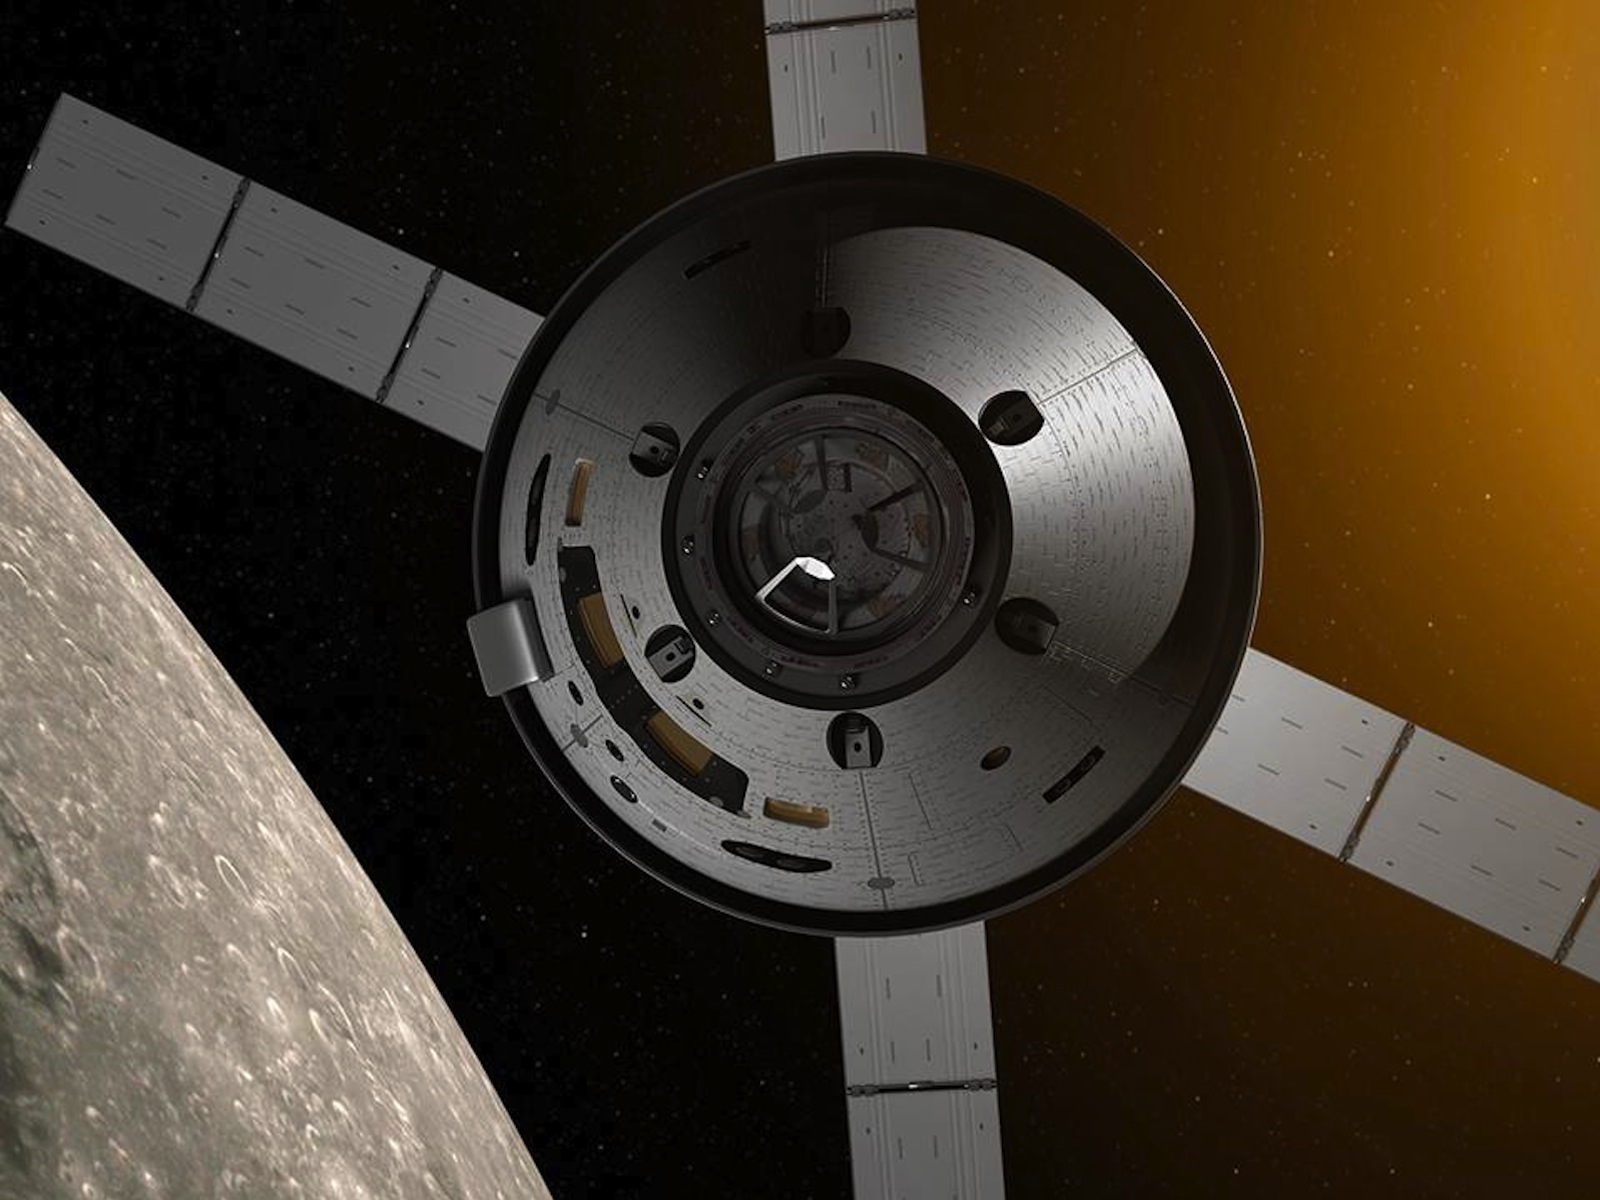 Orion Spacecraft Space Wallpaper